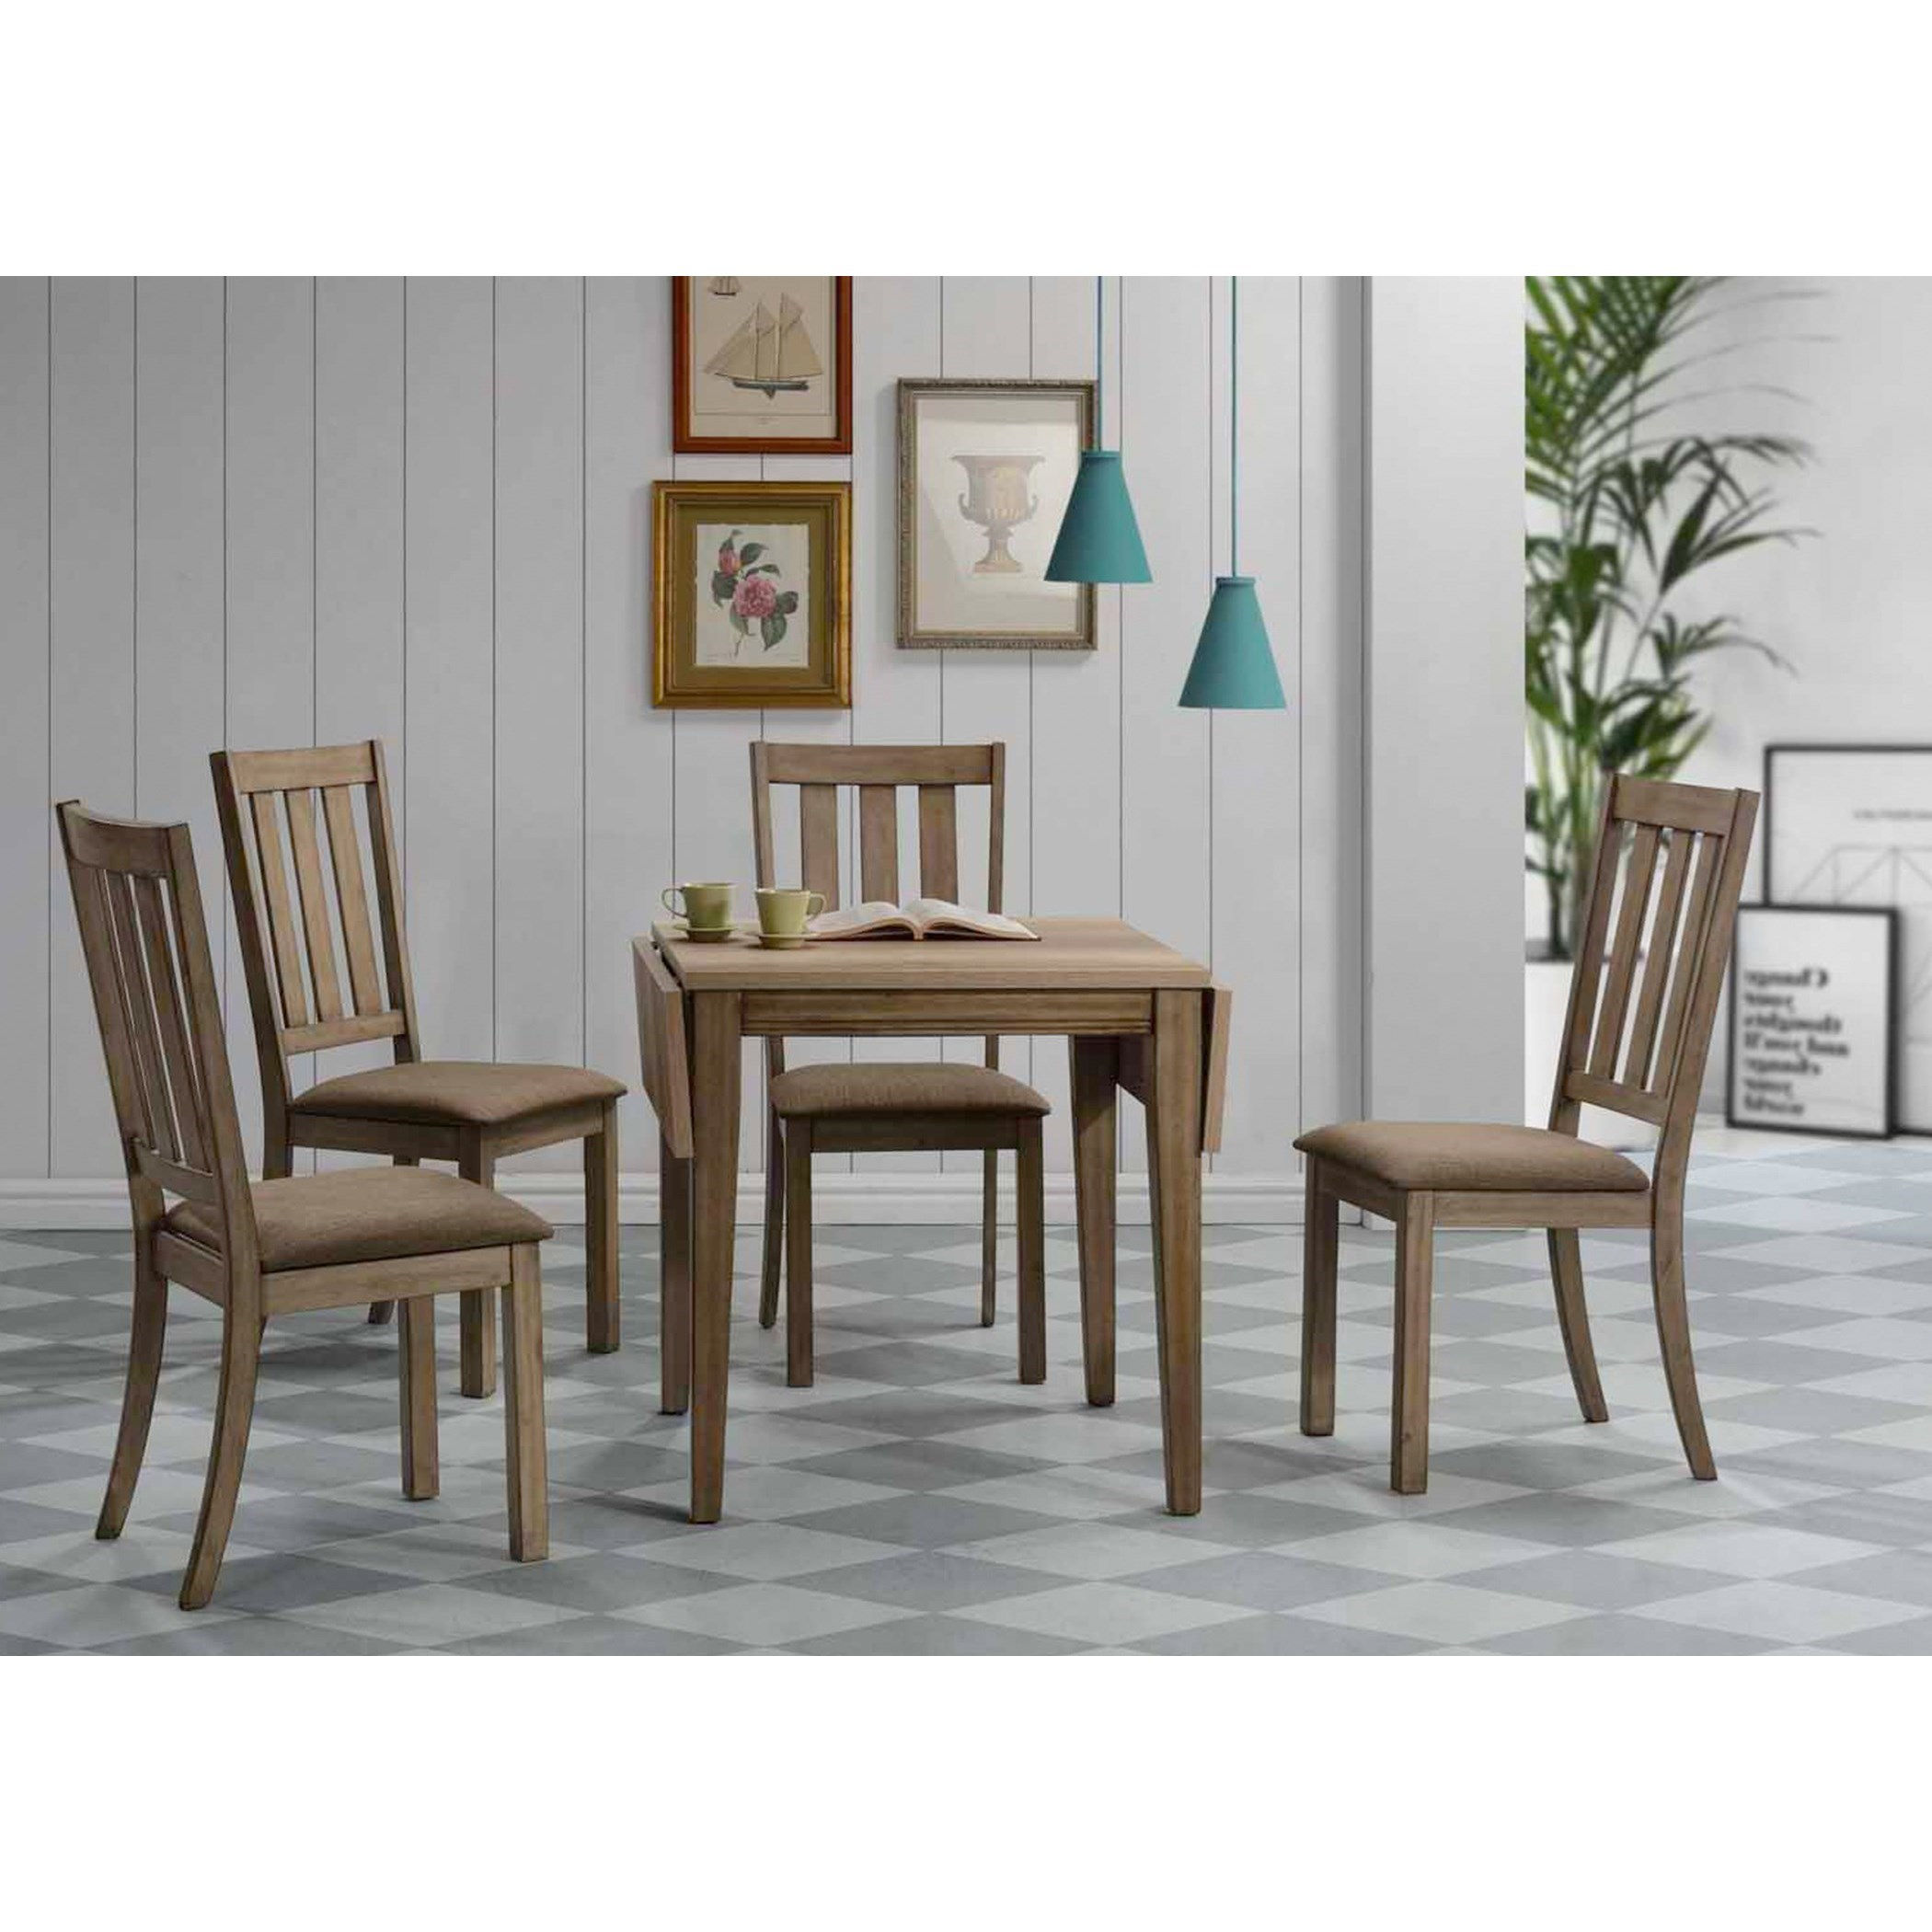 Sun Valley 5 Piece Drop Leaf Set by Libby at Walker's Furniture